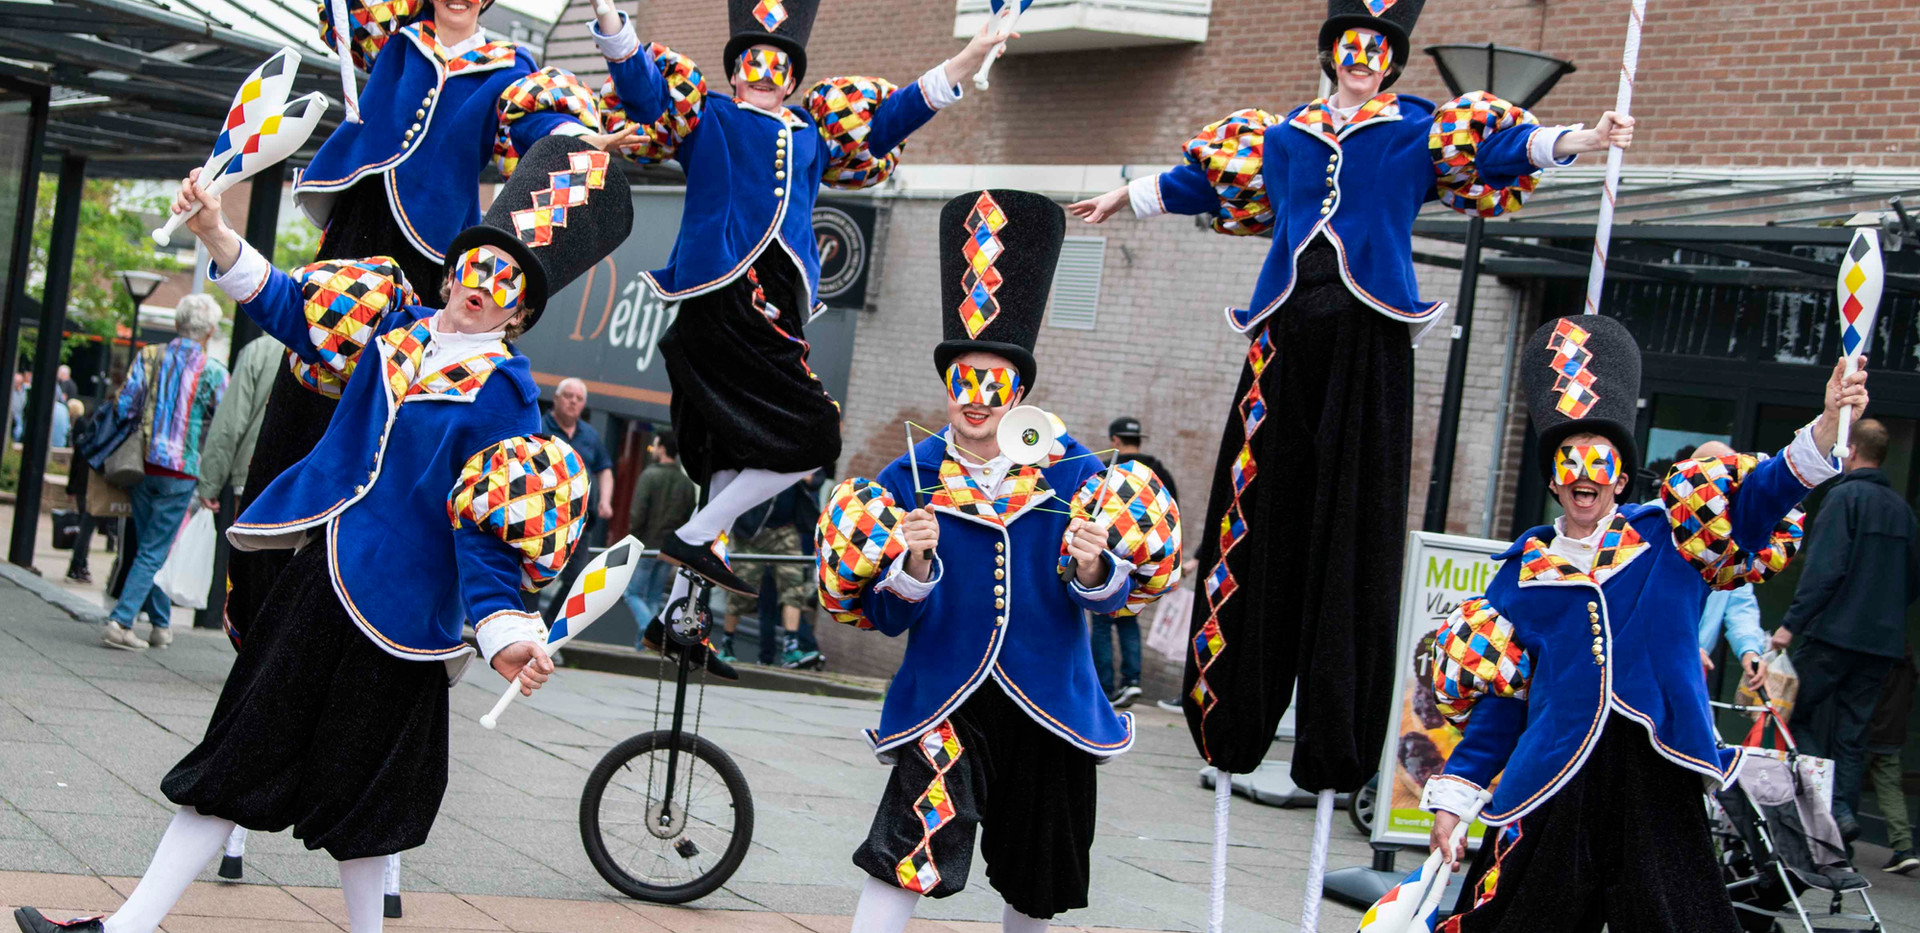 Cirque_Masque_streetcircus_entertainment